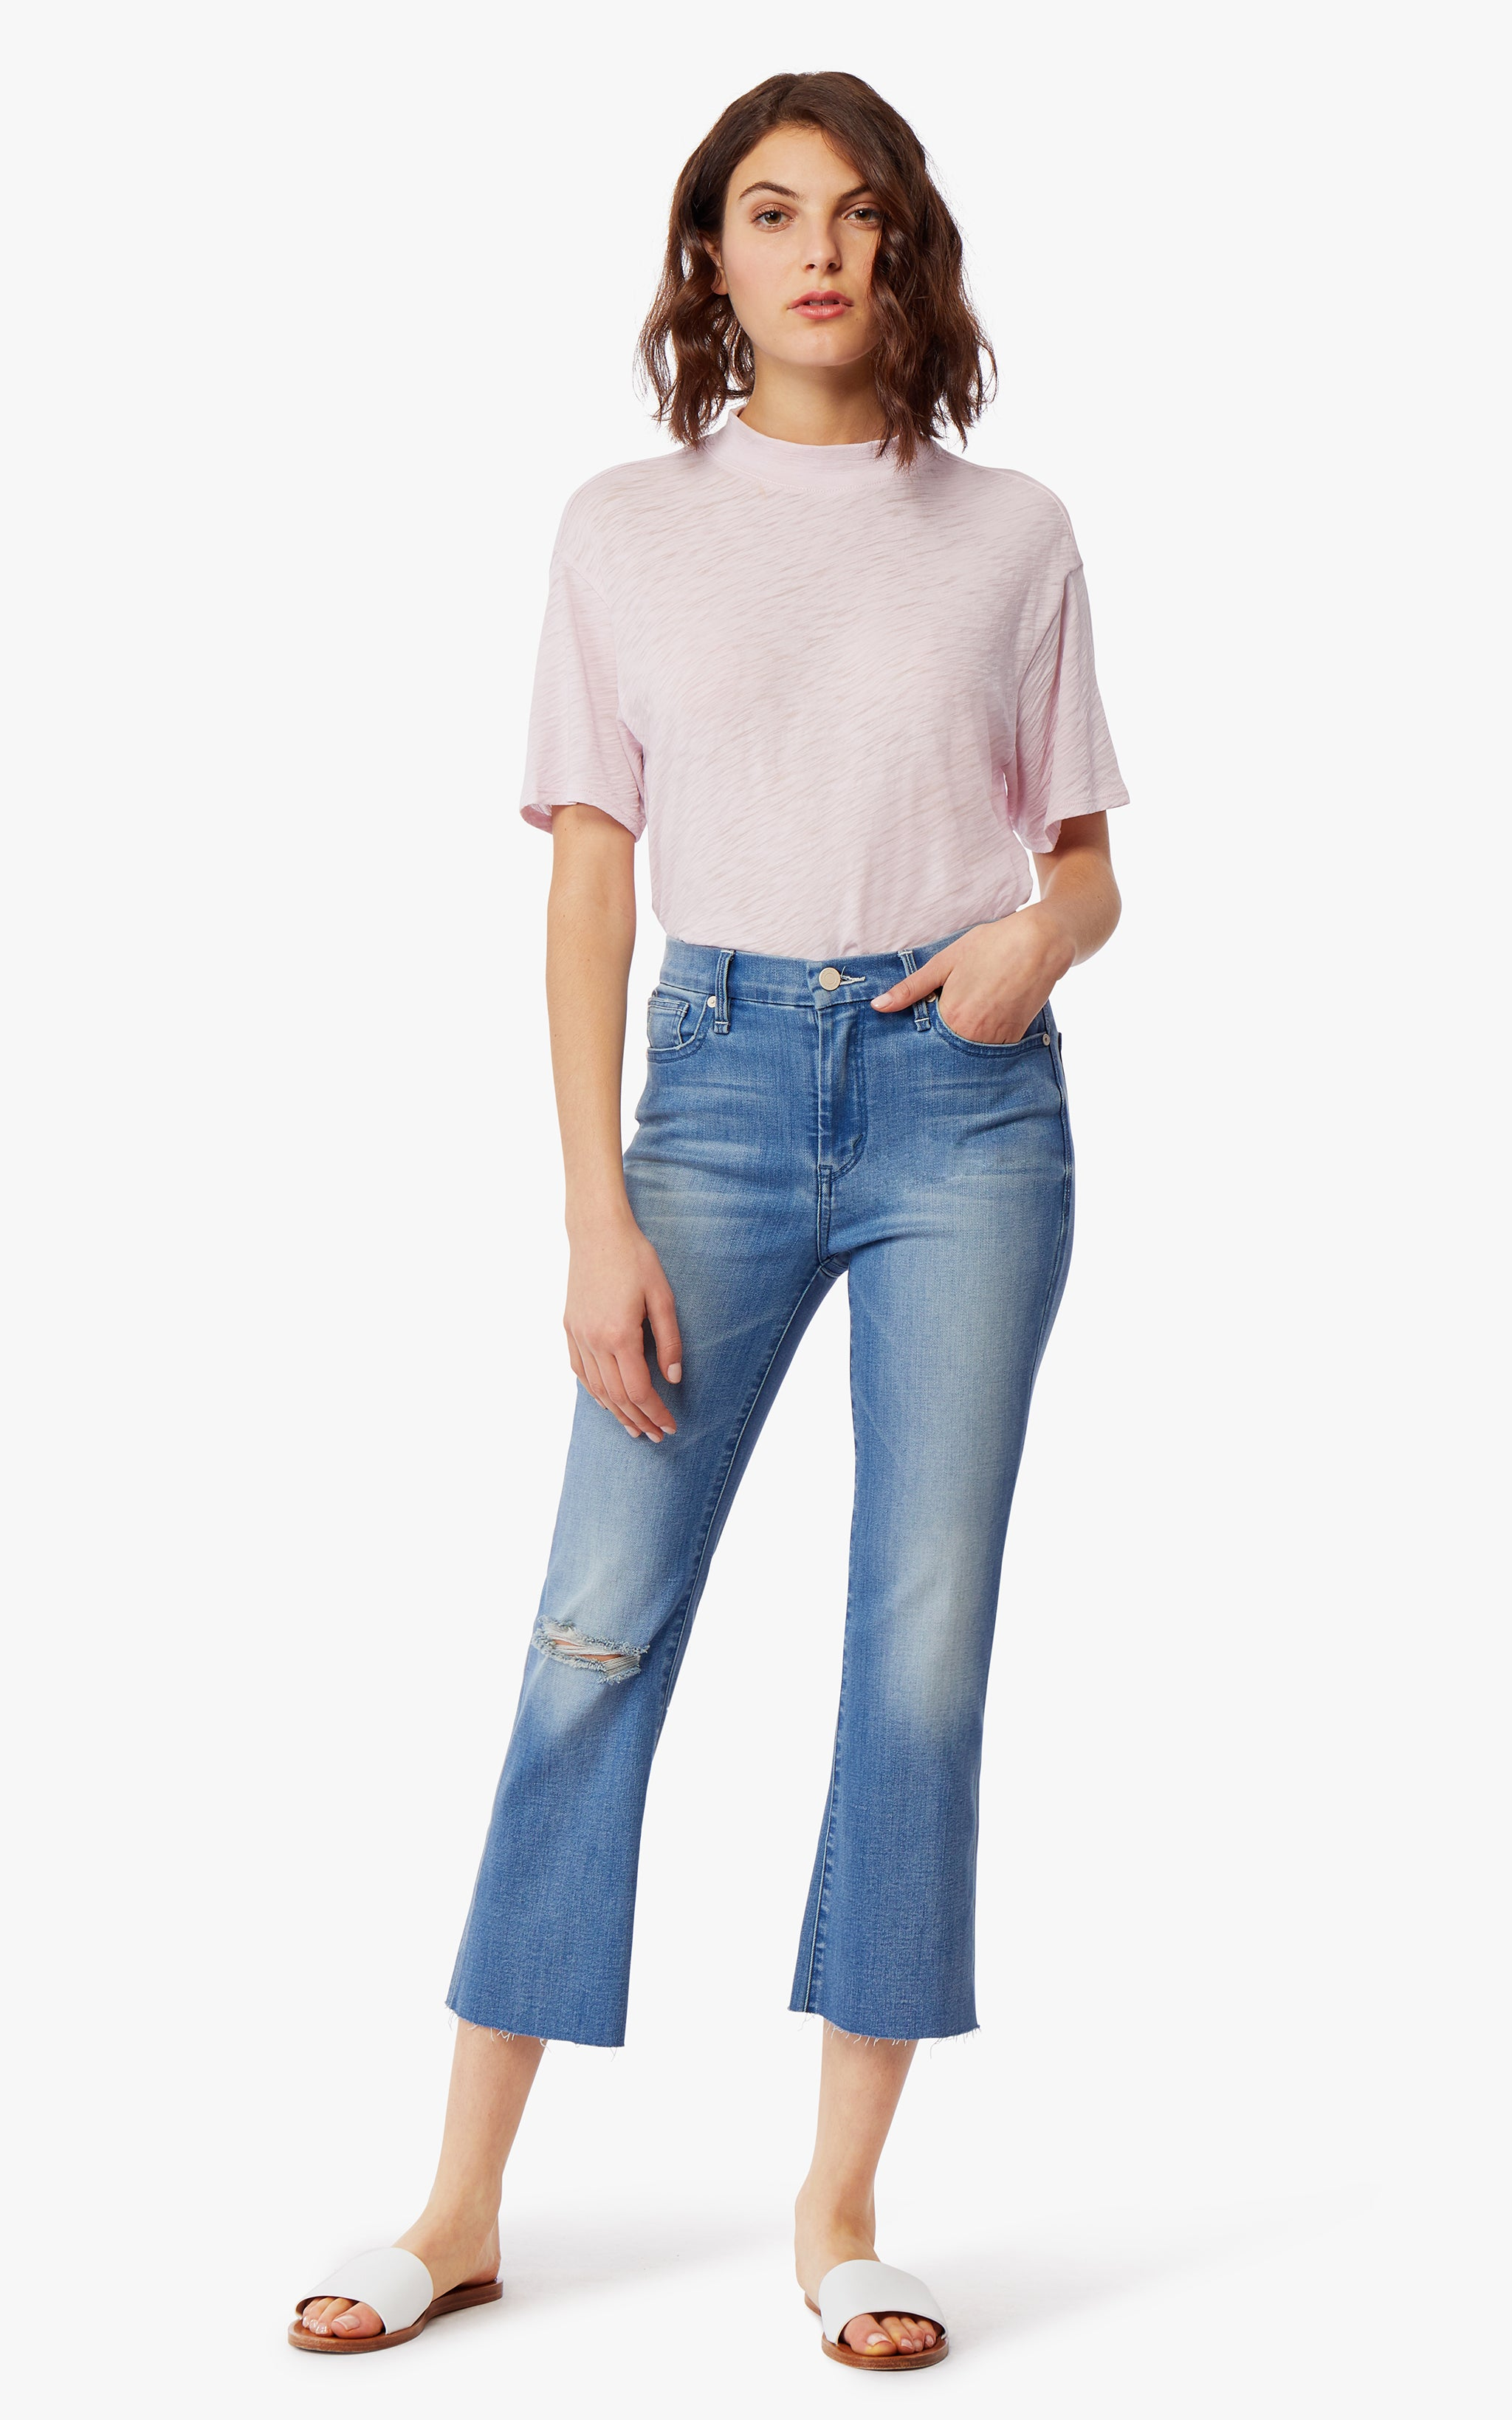 Palo High Rise Crop Flare Double Bite Jeans - Habitual